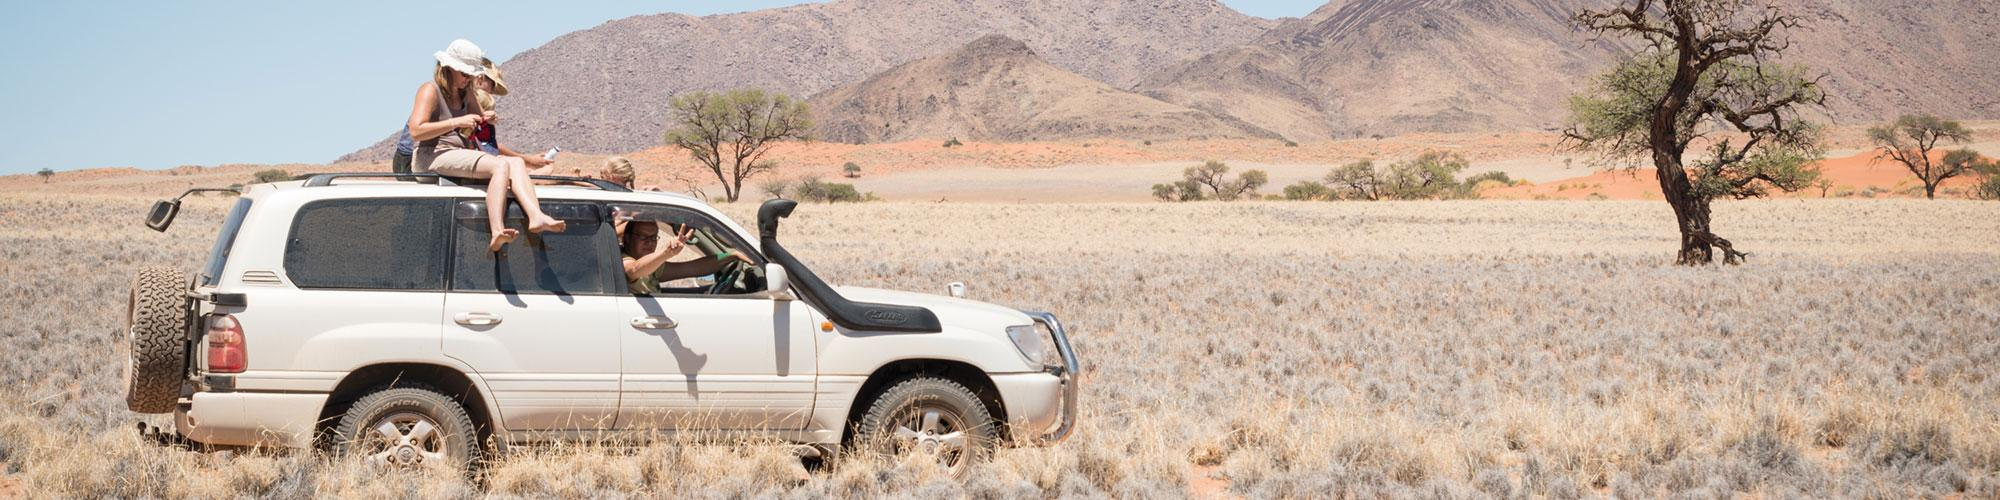 Tanken in Namibia